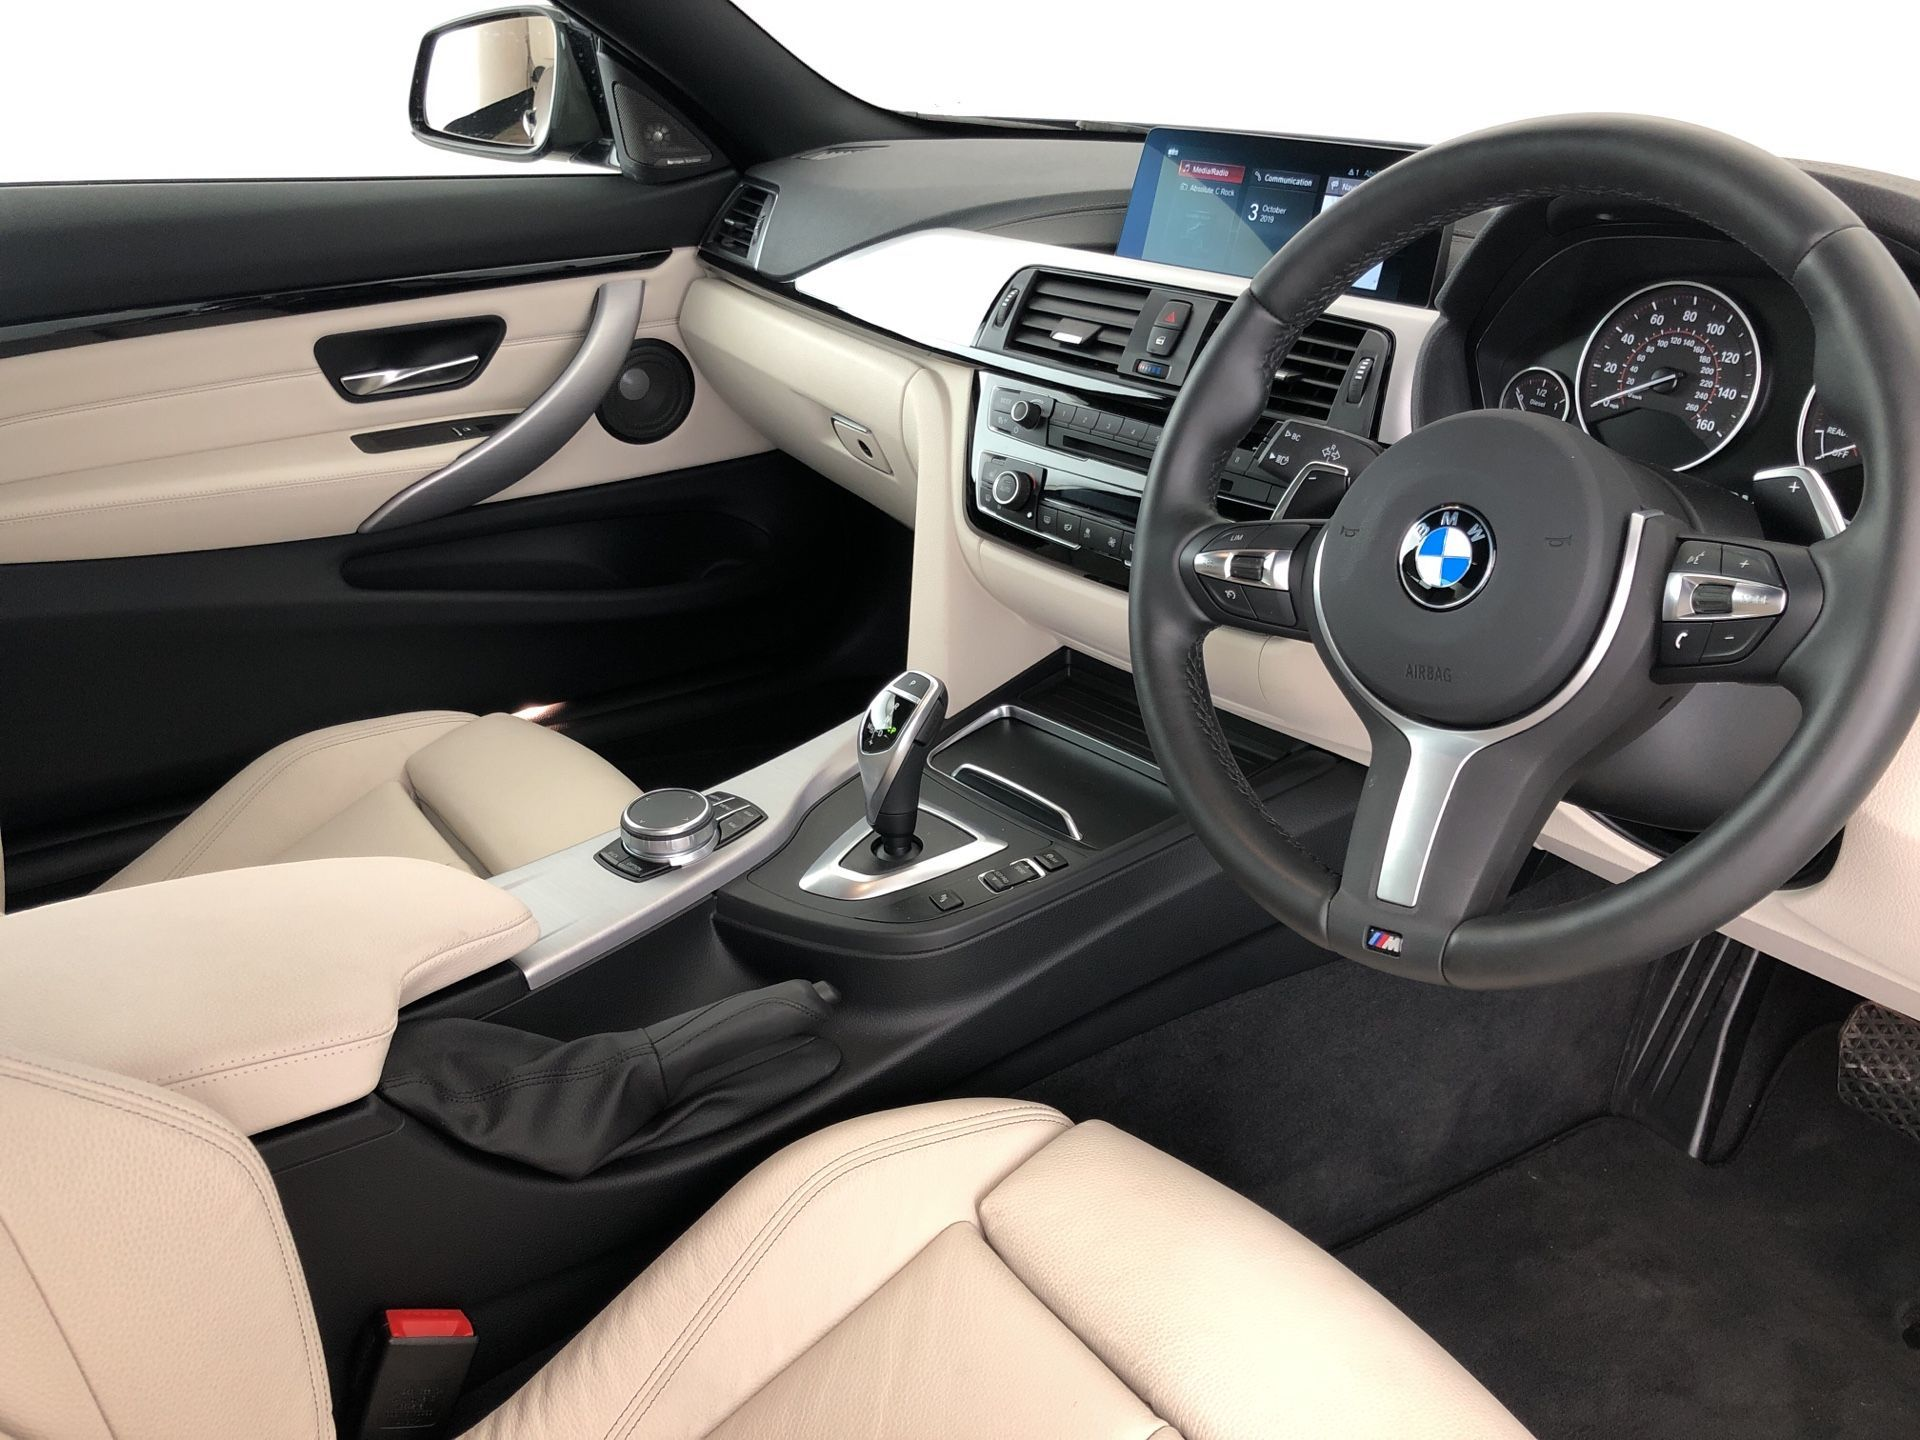 Image 4 - BMW 420d M Sport Coupe (YJ68YWP)